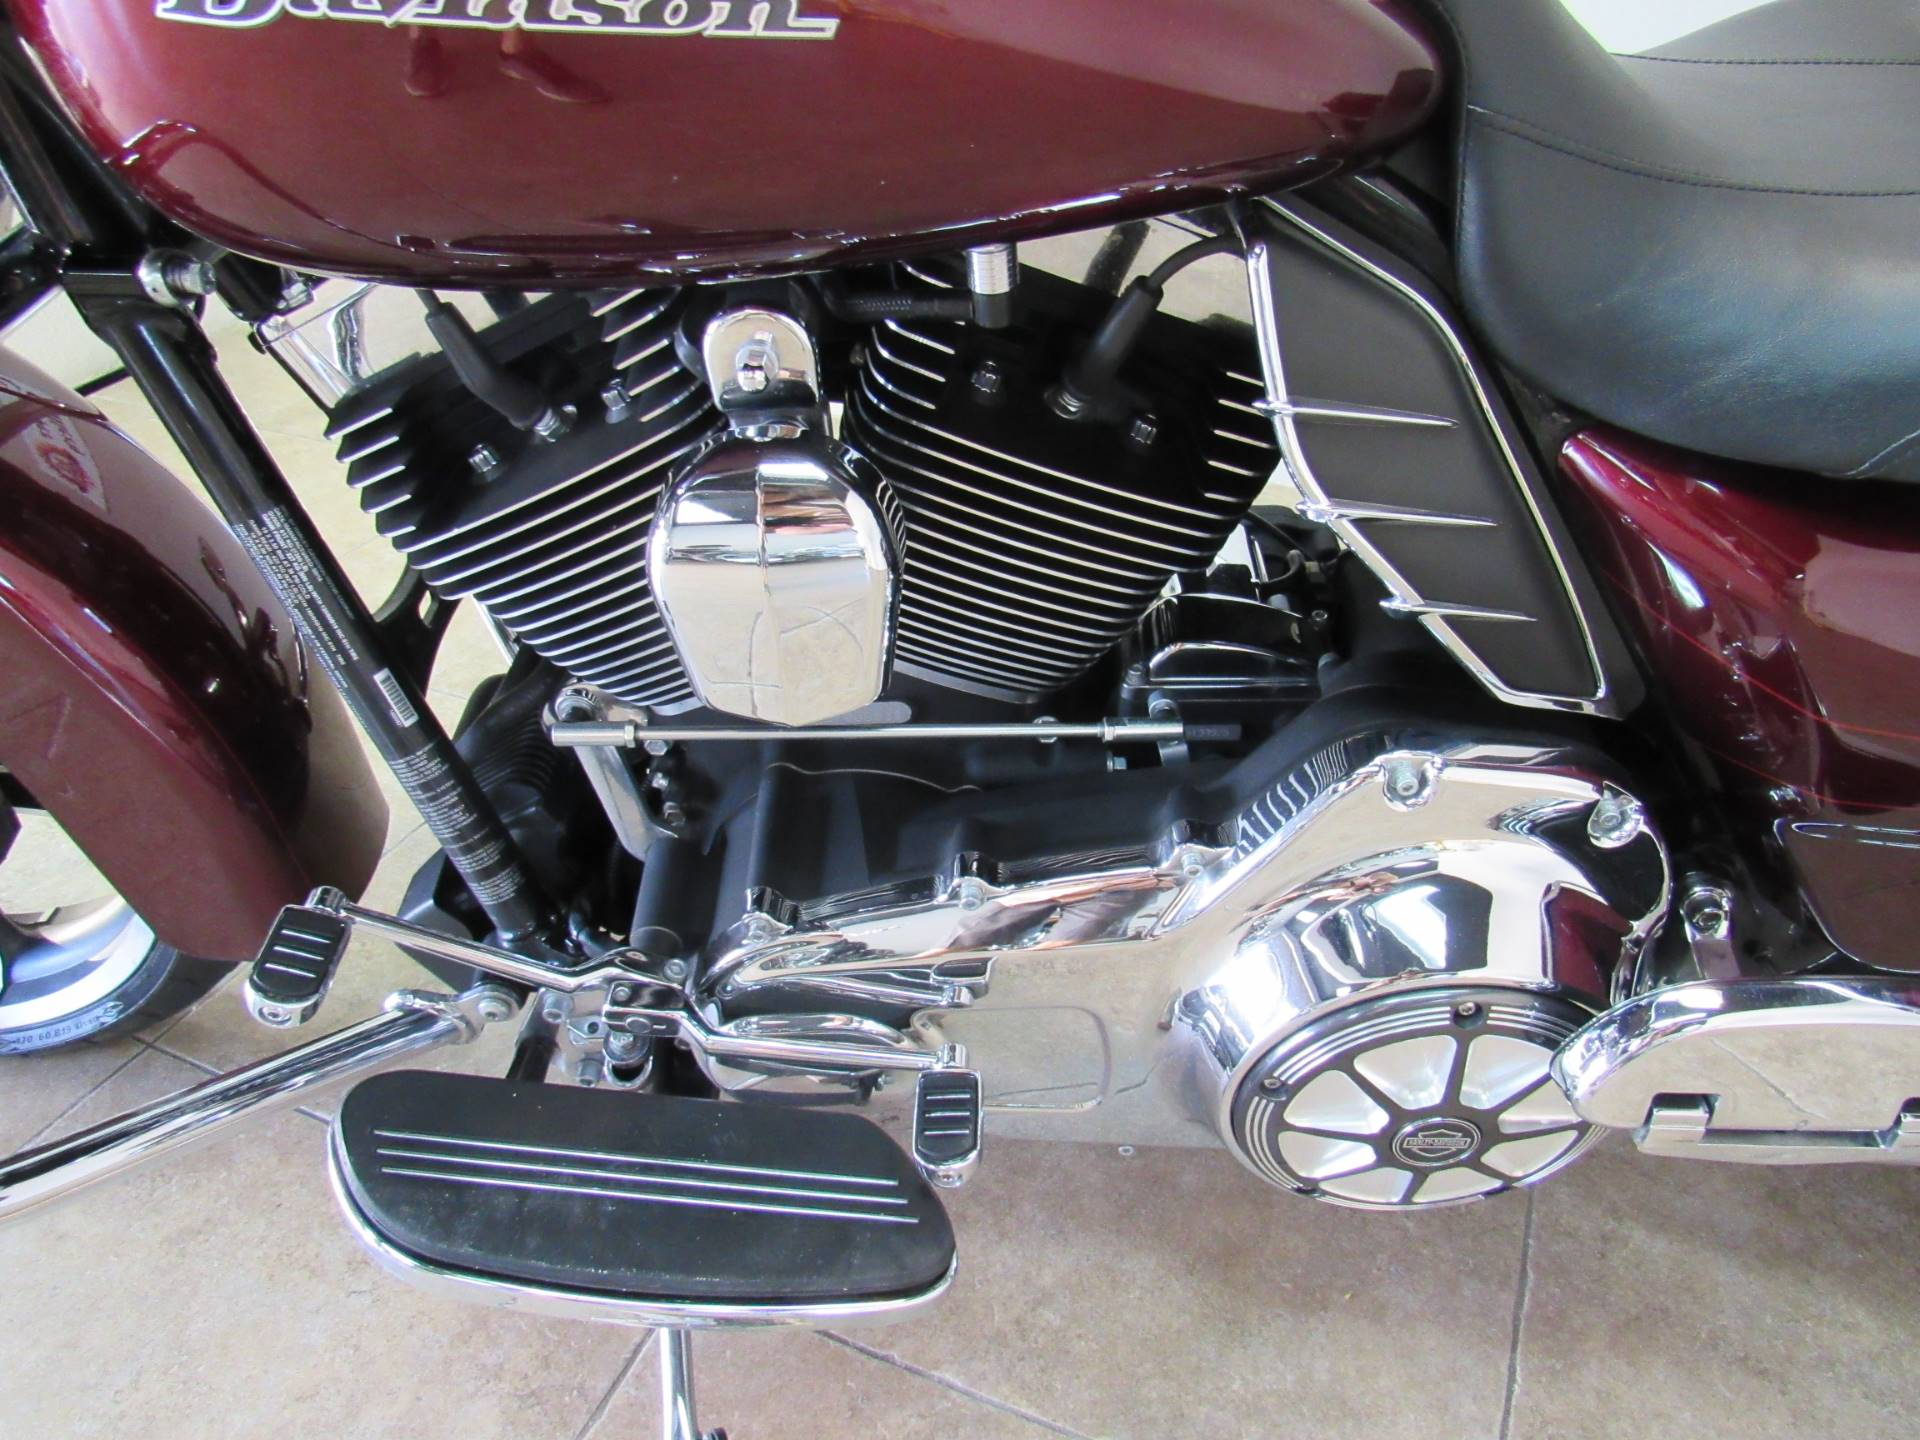 2014 Harley-Davidson Street Glide® Special in Temecula, California - Photo 20